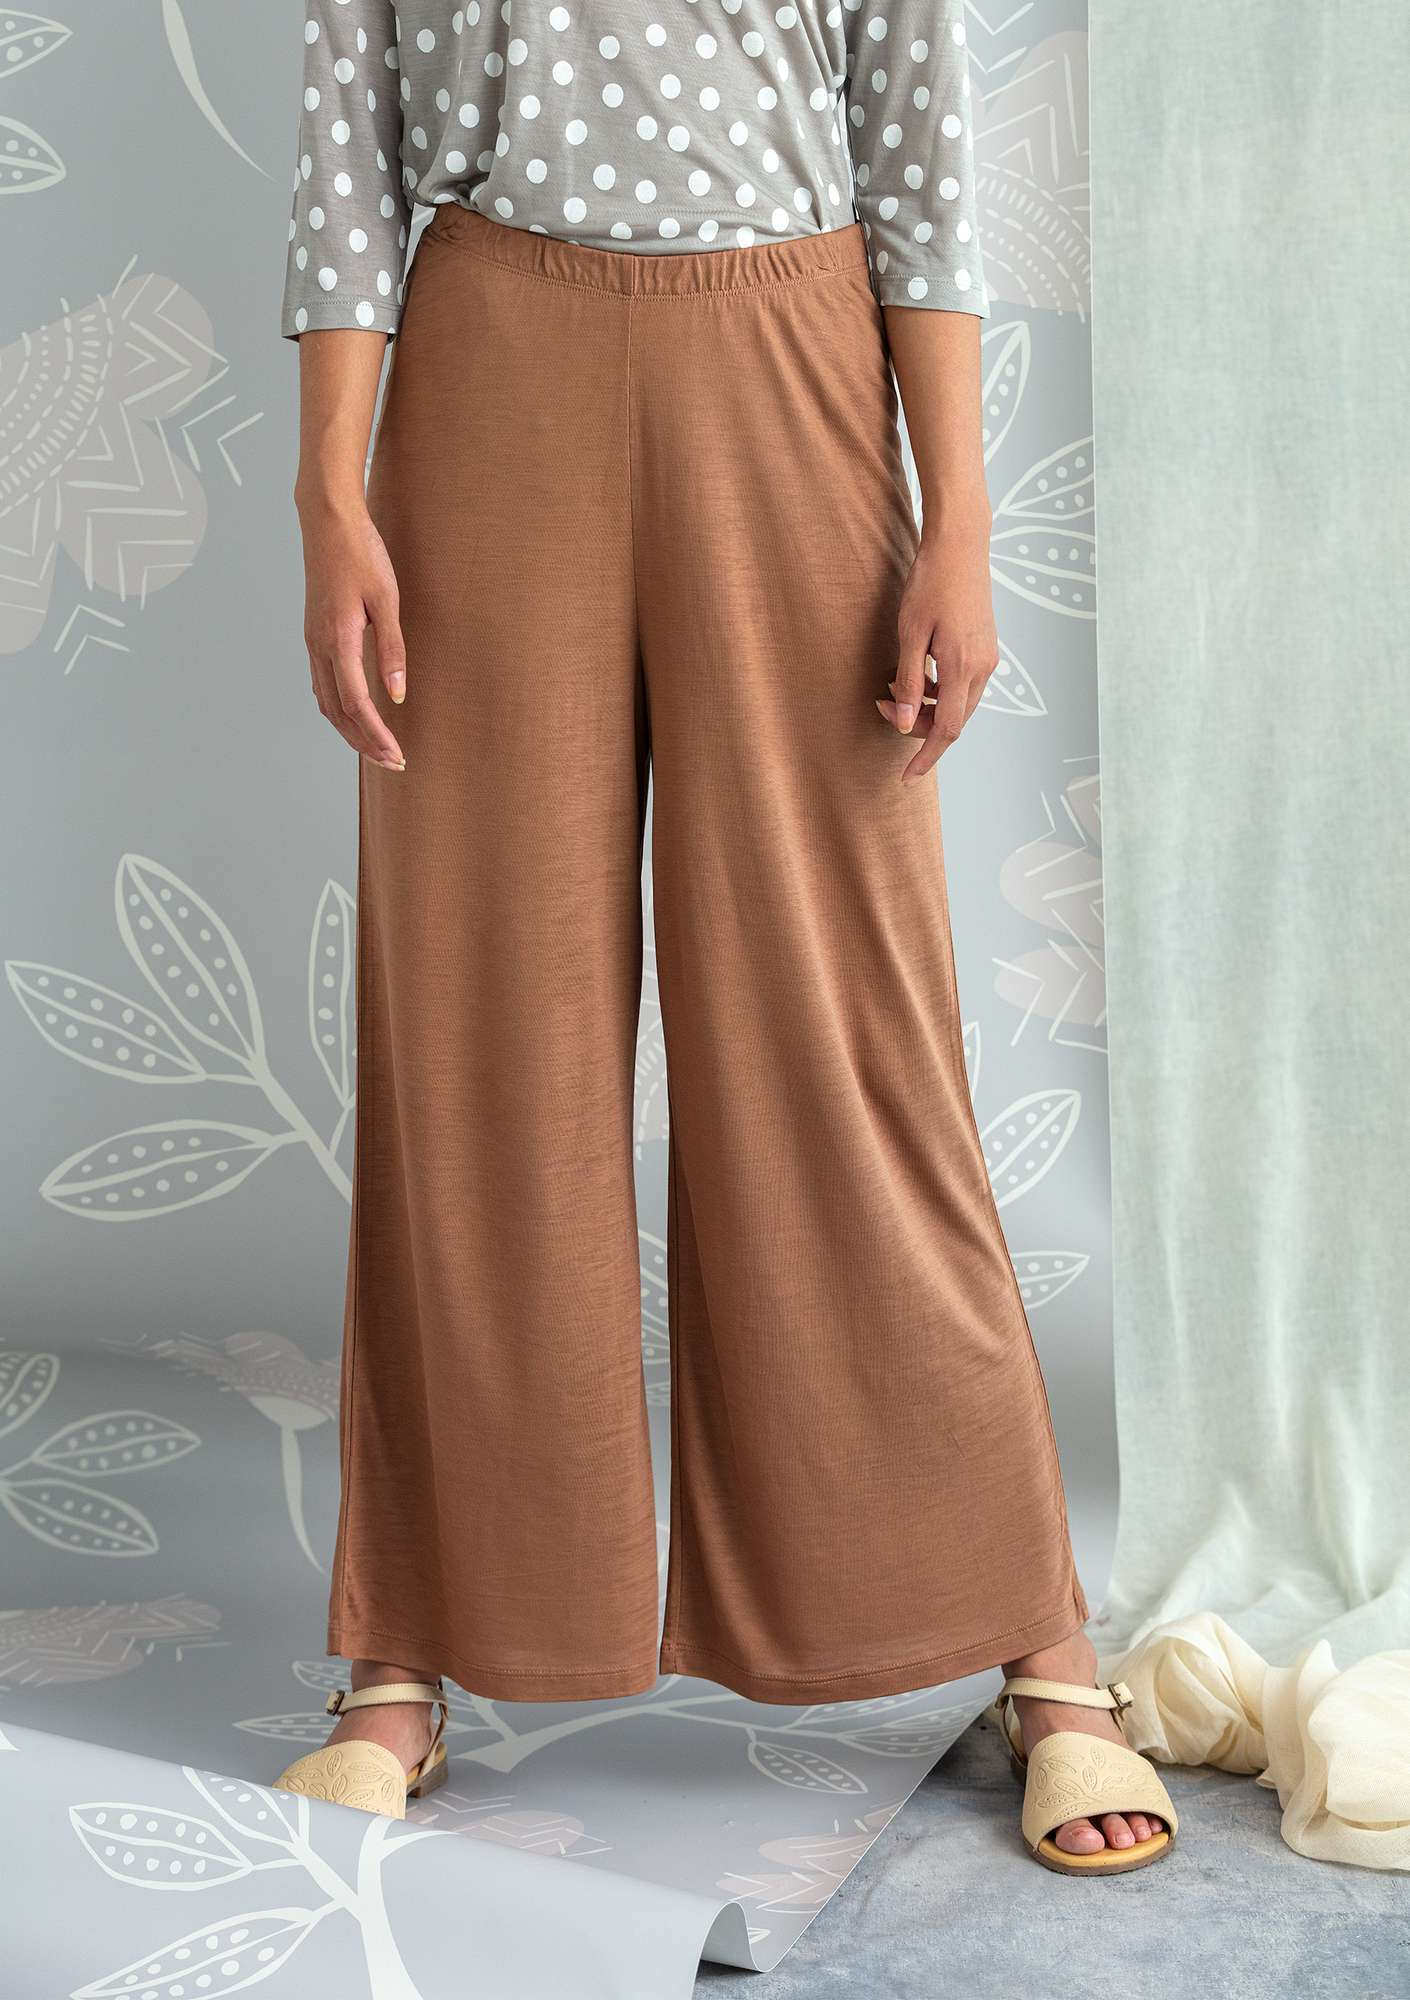 Solid-colored jersey pants cocoa